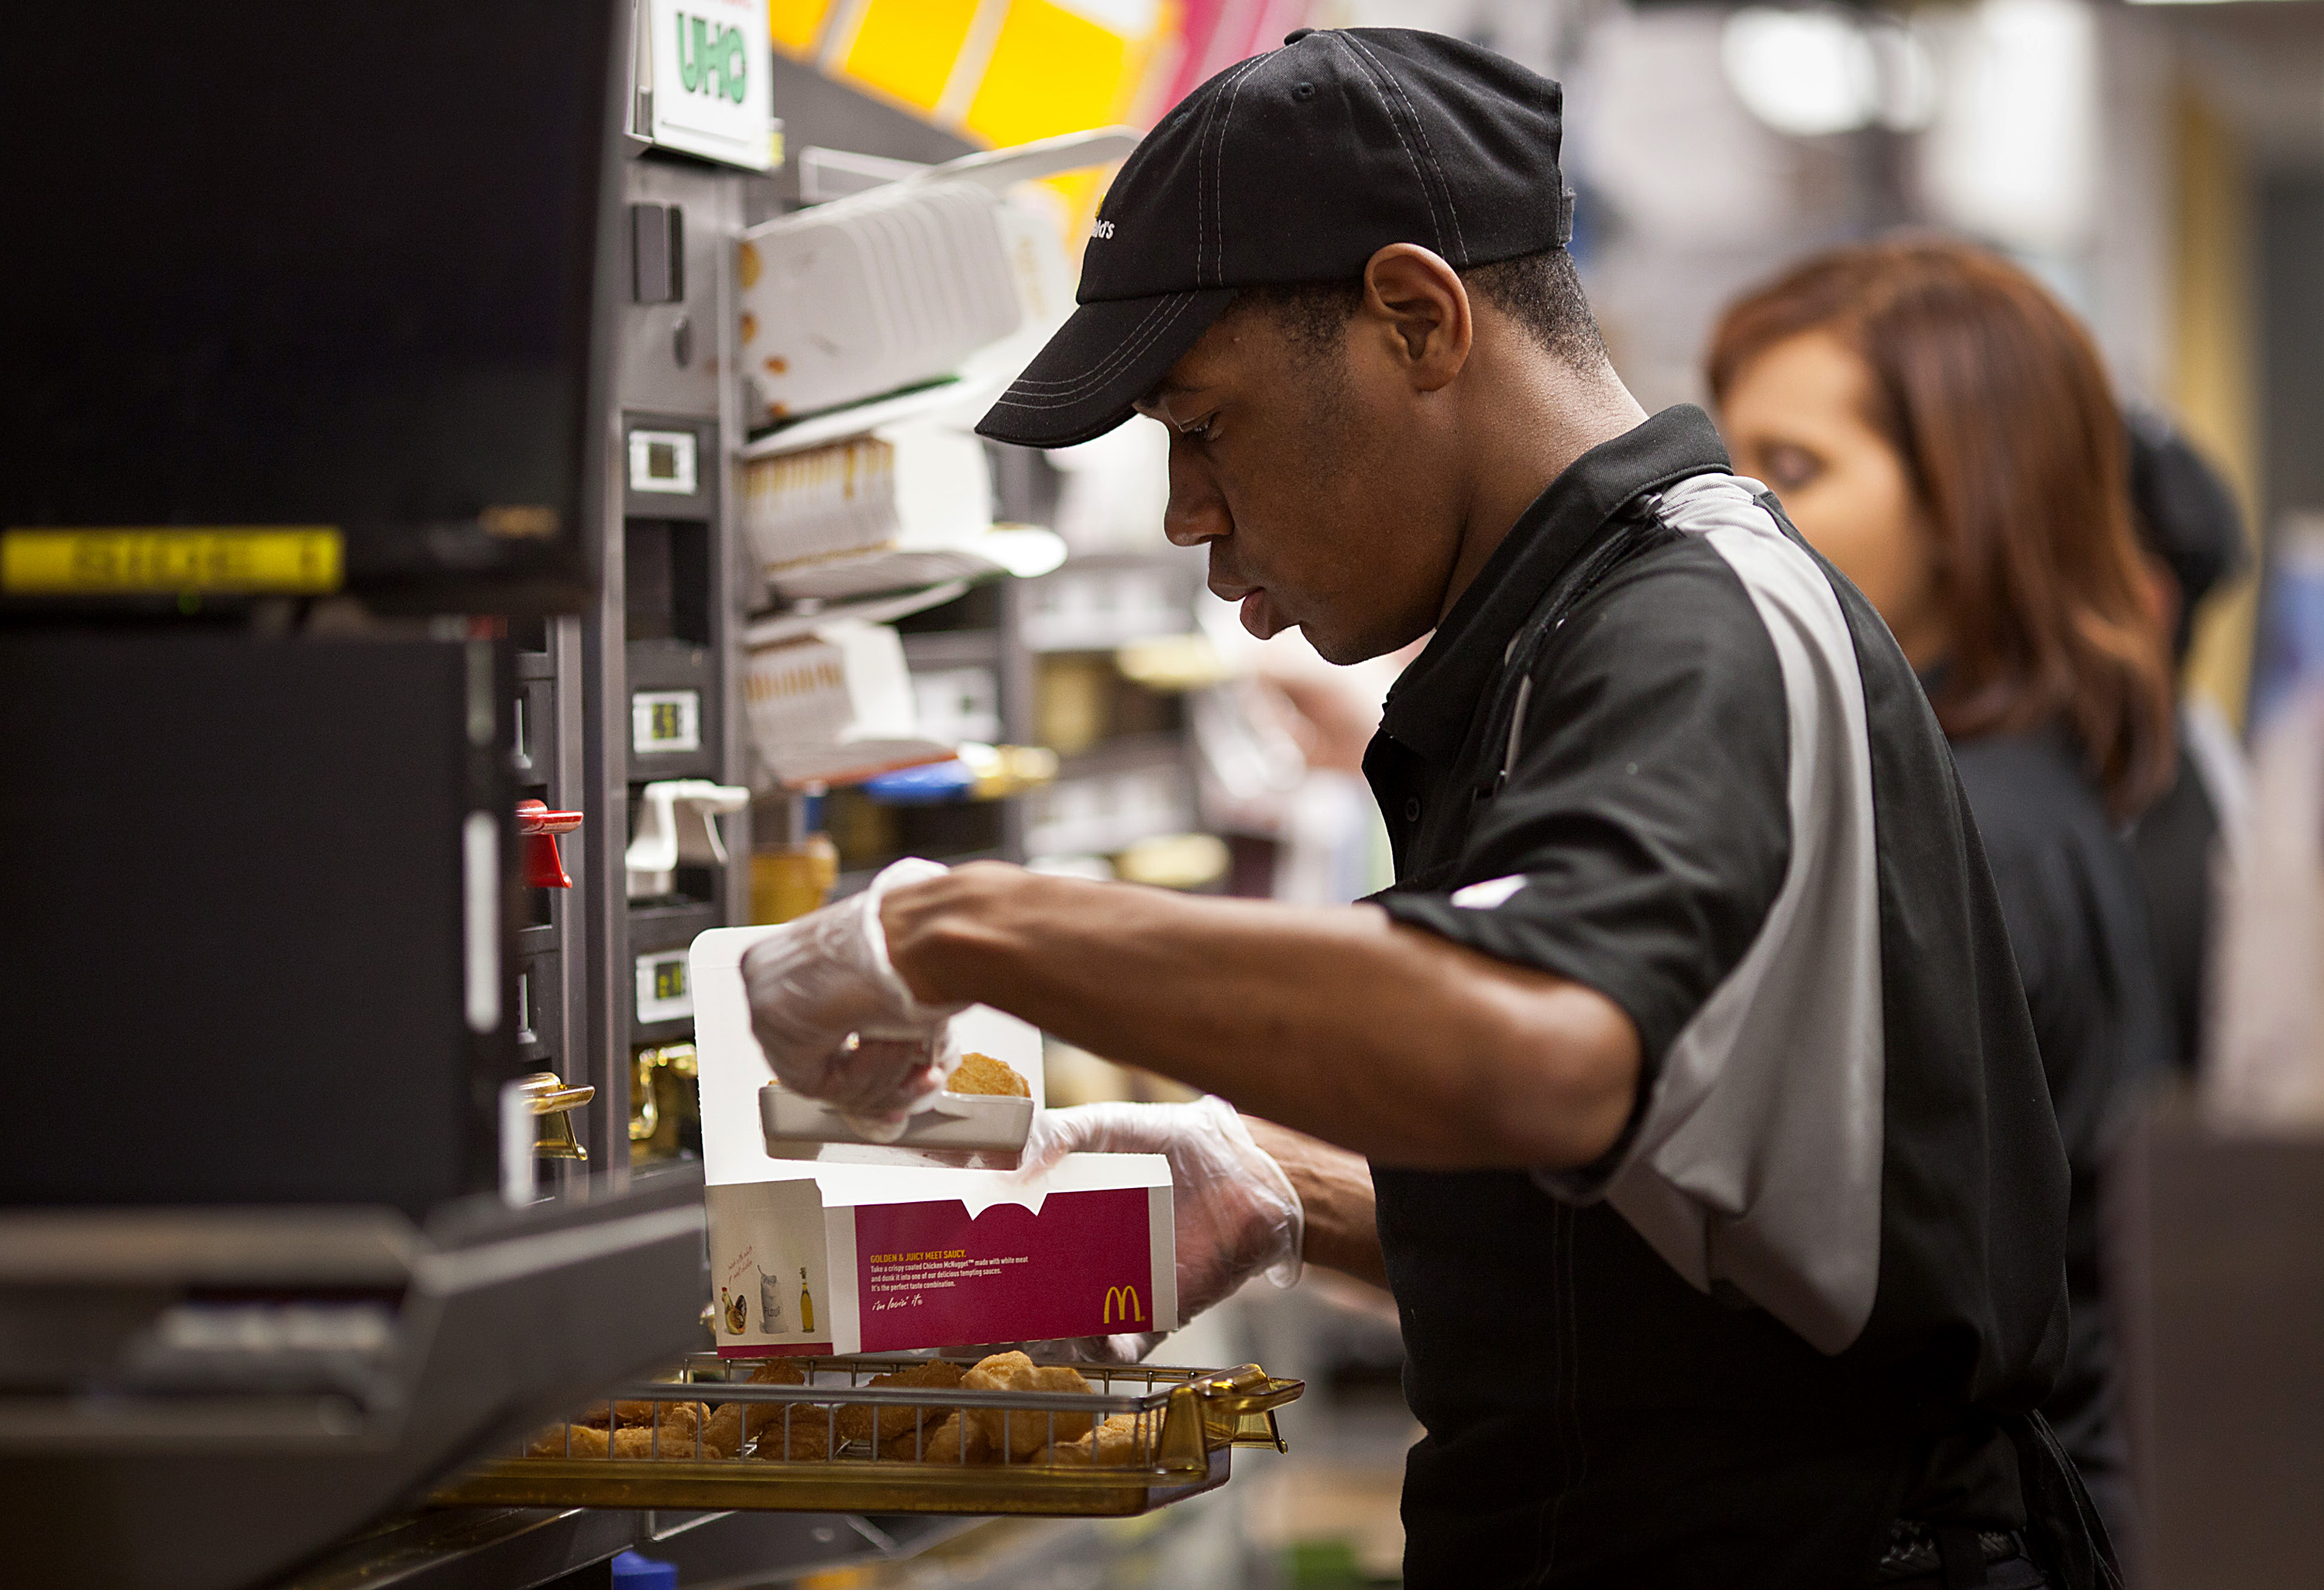 A worker puts together an order of Chicken McNuggets at a McDonald's Corp. restaurant in Little Falls, New Jersey, U.S.